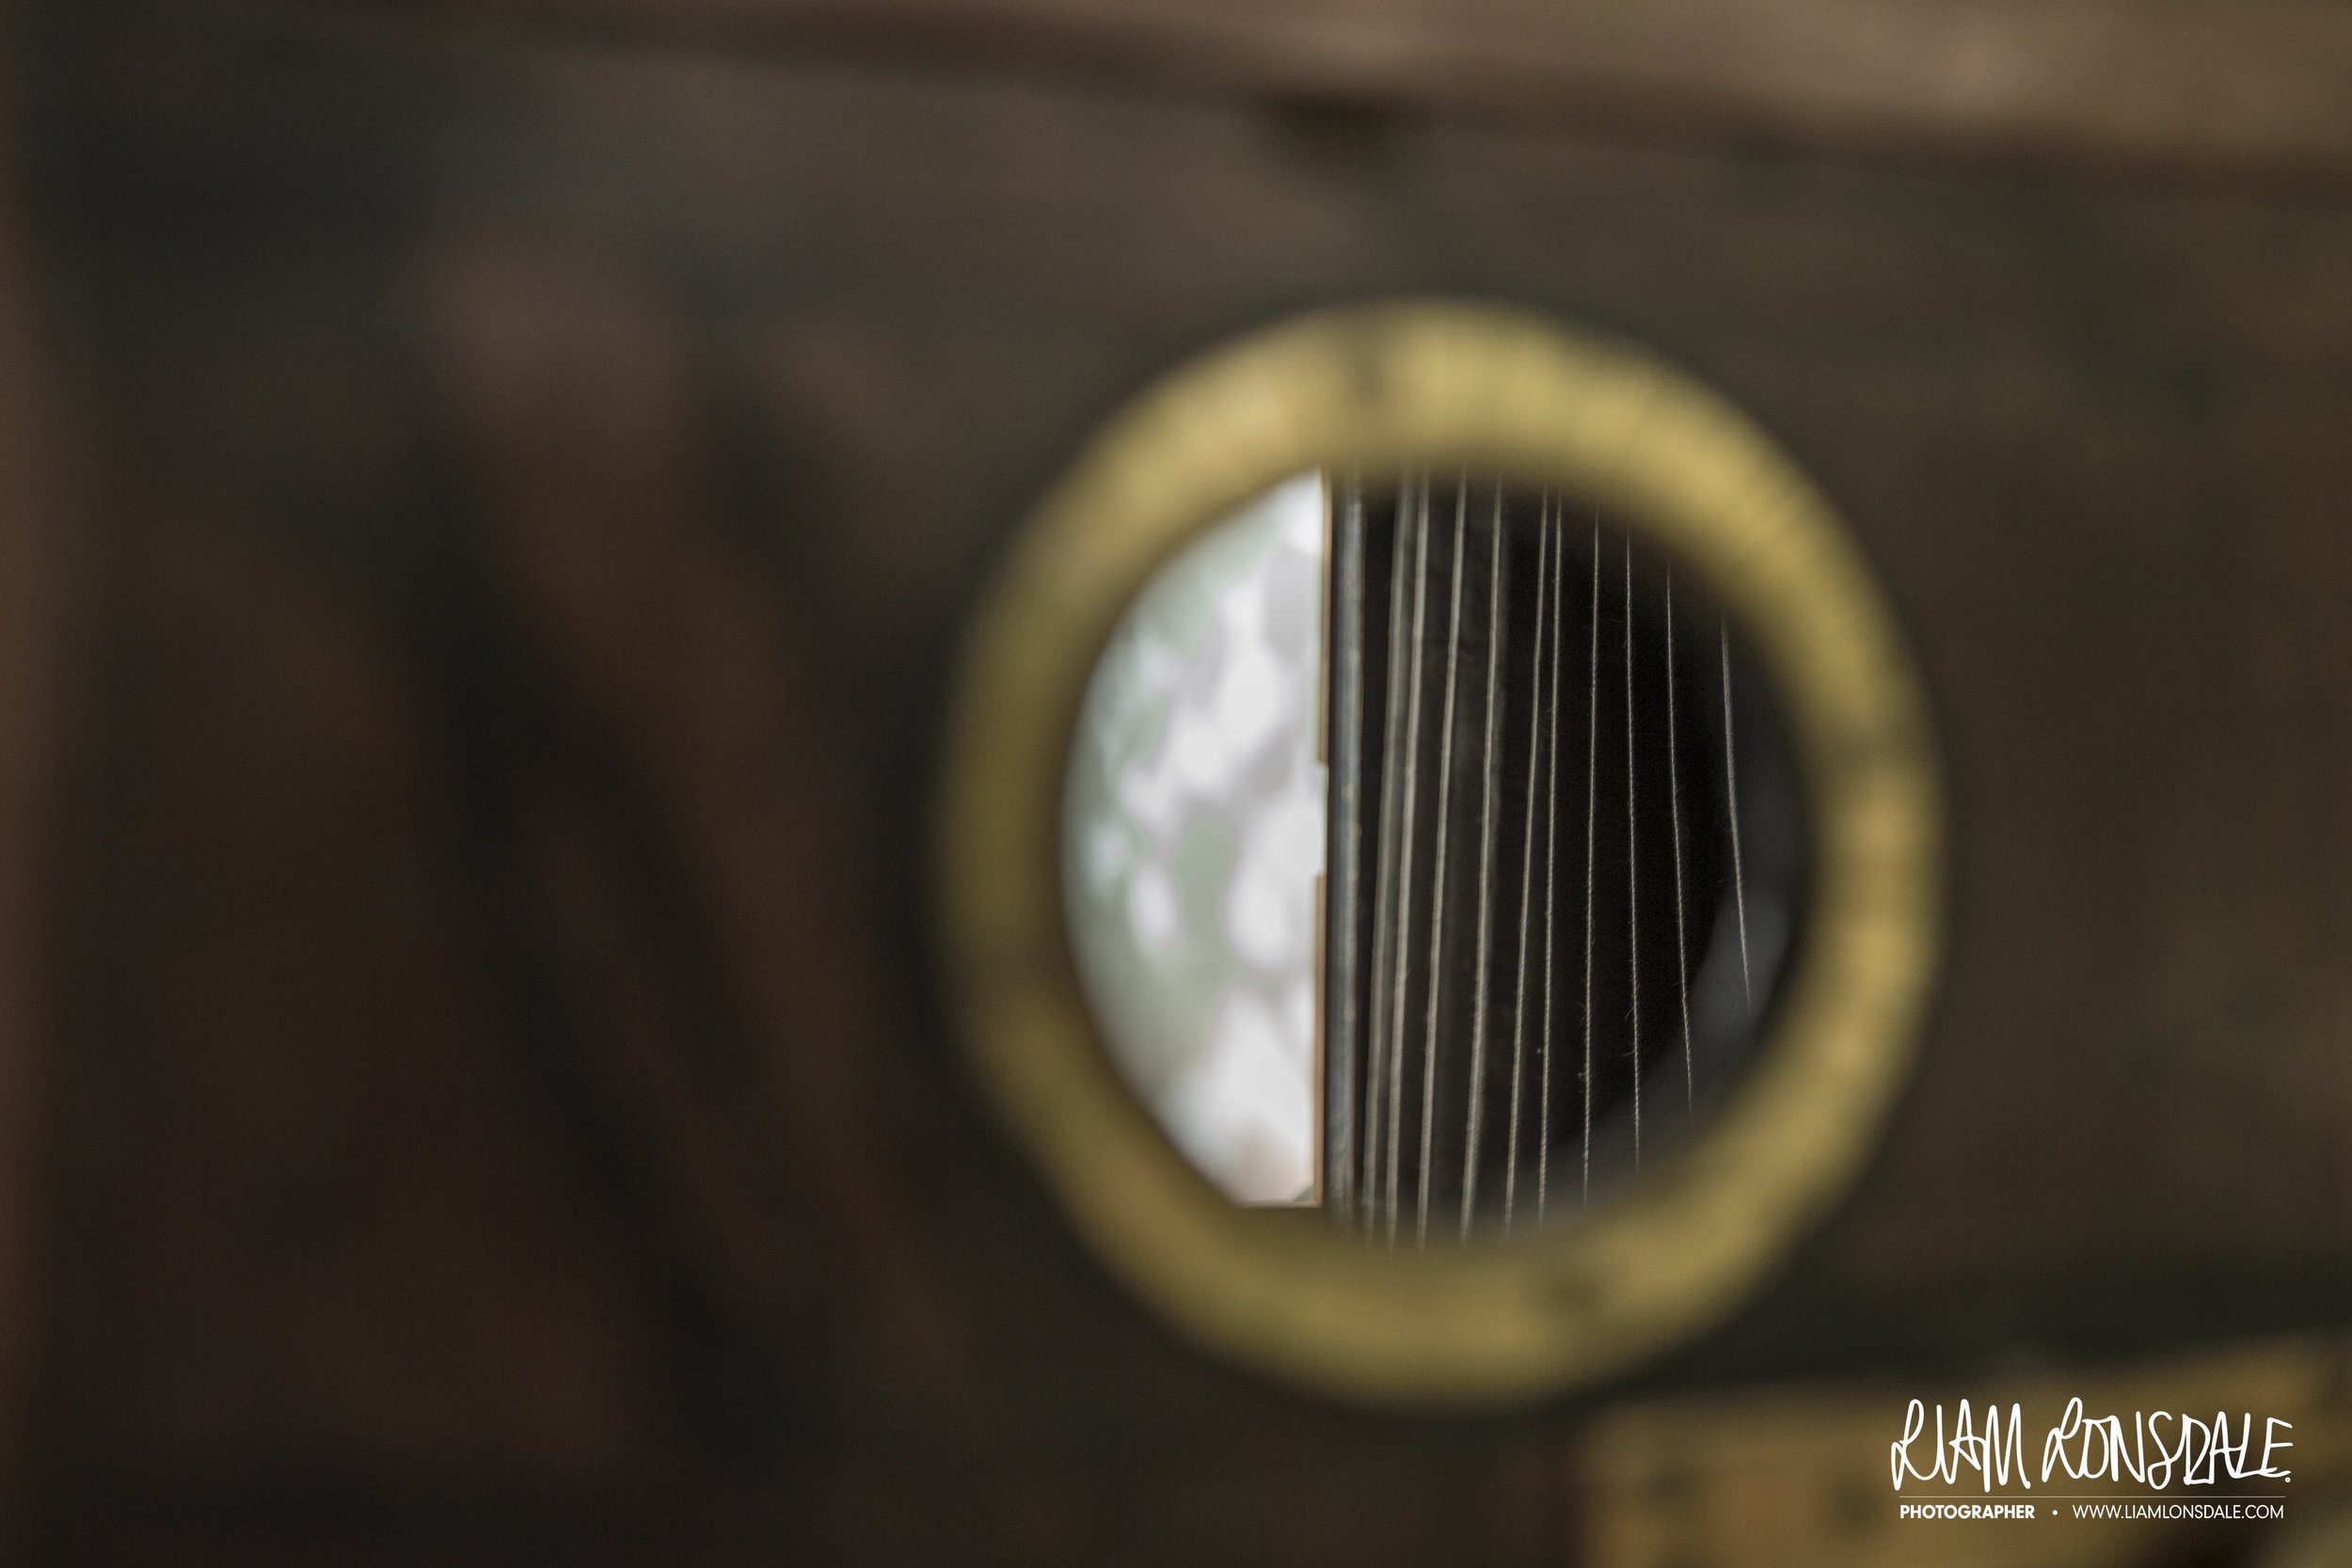 Looking through the front of the camera, through the 'lens mount in fact', at the inside of the bellows | pic © L LONSDALE